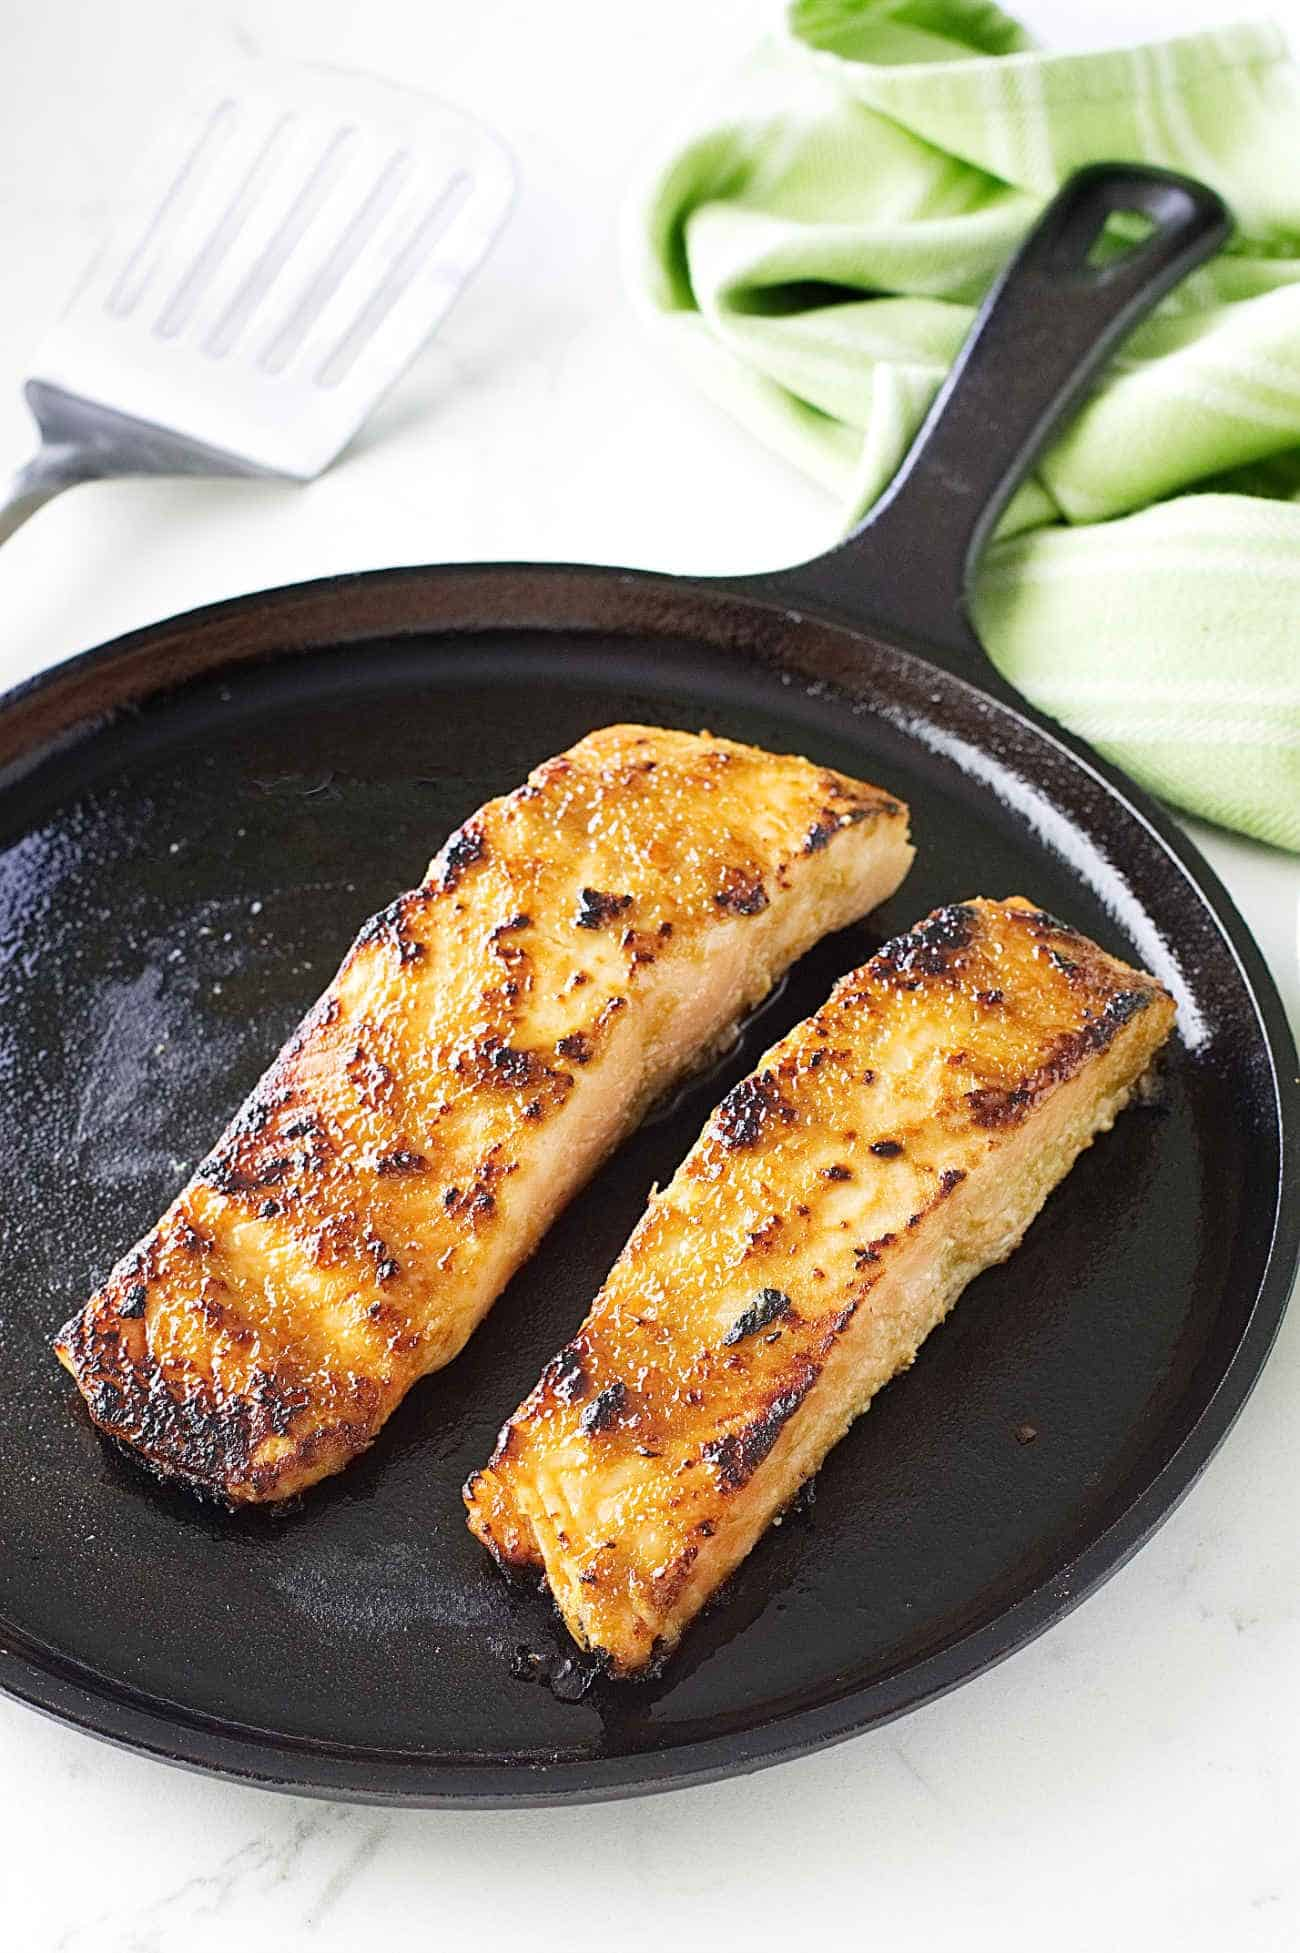 While The Oven Was Preheating On Broil, We Heated Our Cast Iron Griddle  The Salmon Fillets Were Removed From The Marinade, And After The Excess  Marinade